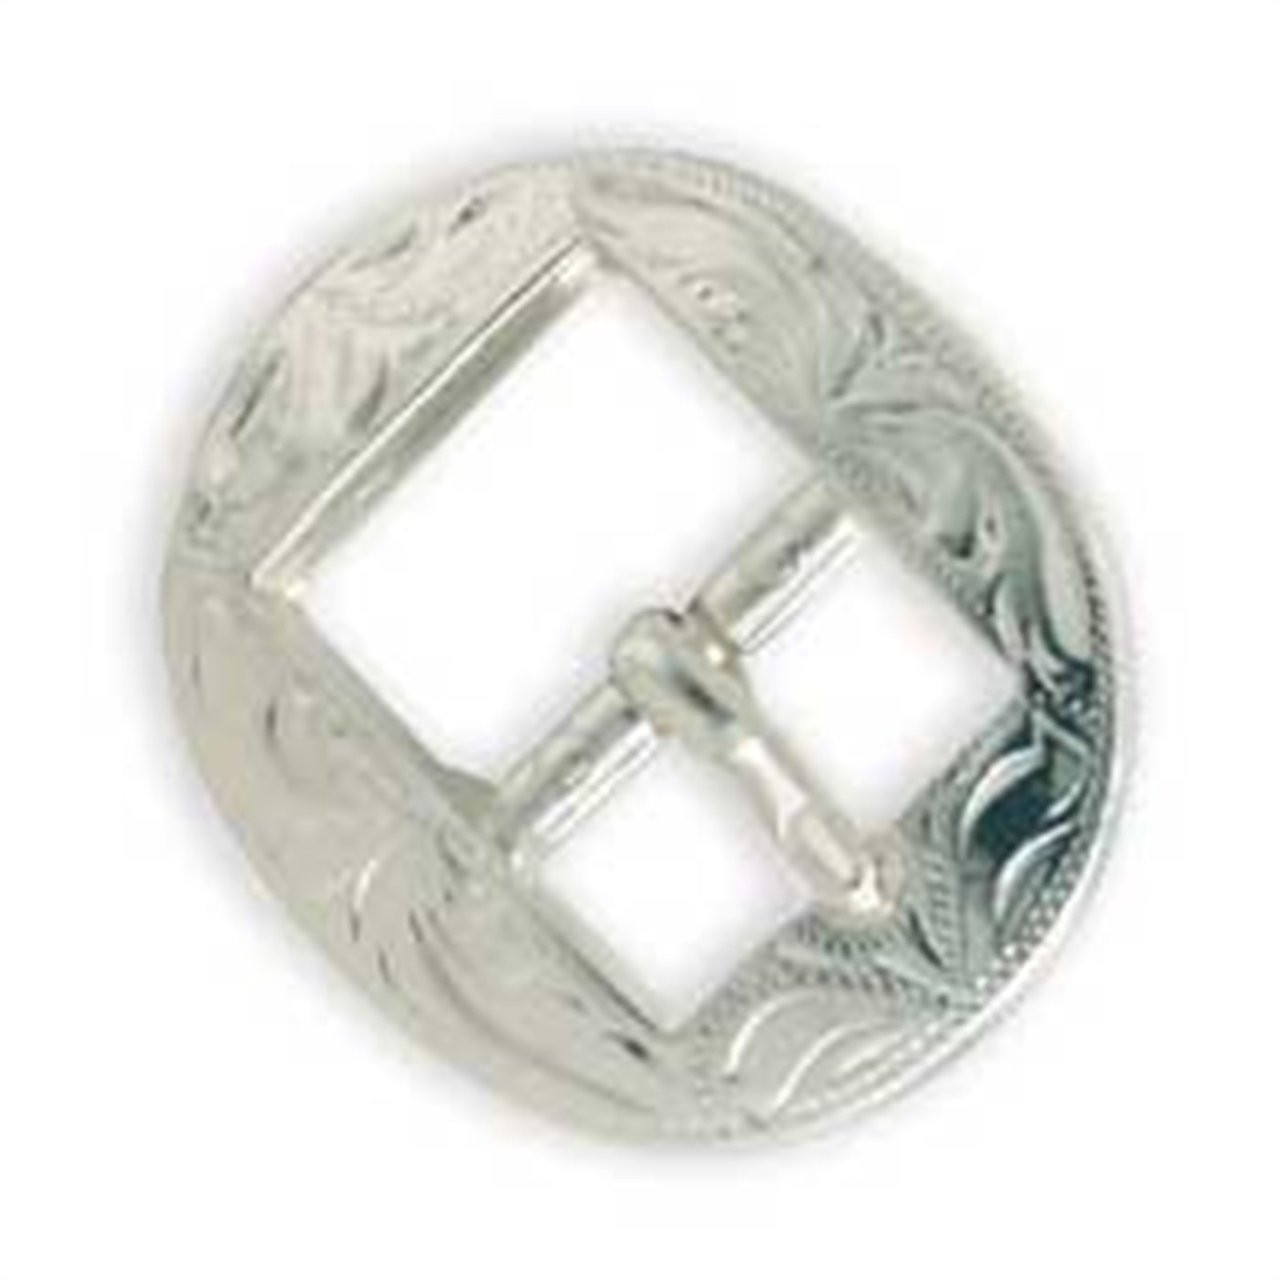 Engraved Bridle Buckle with Silver Platting